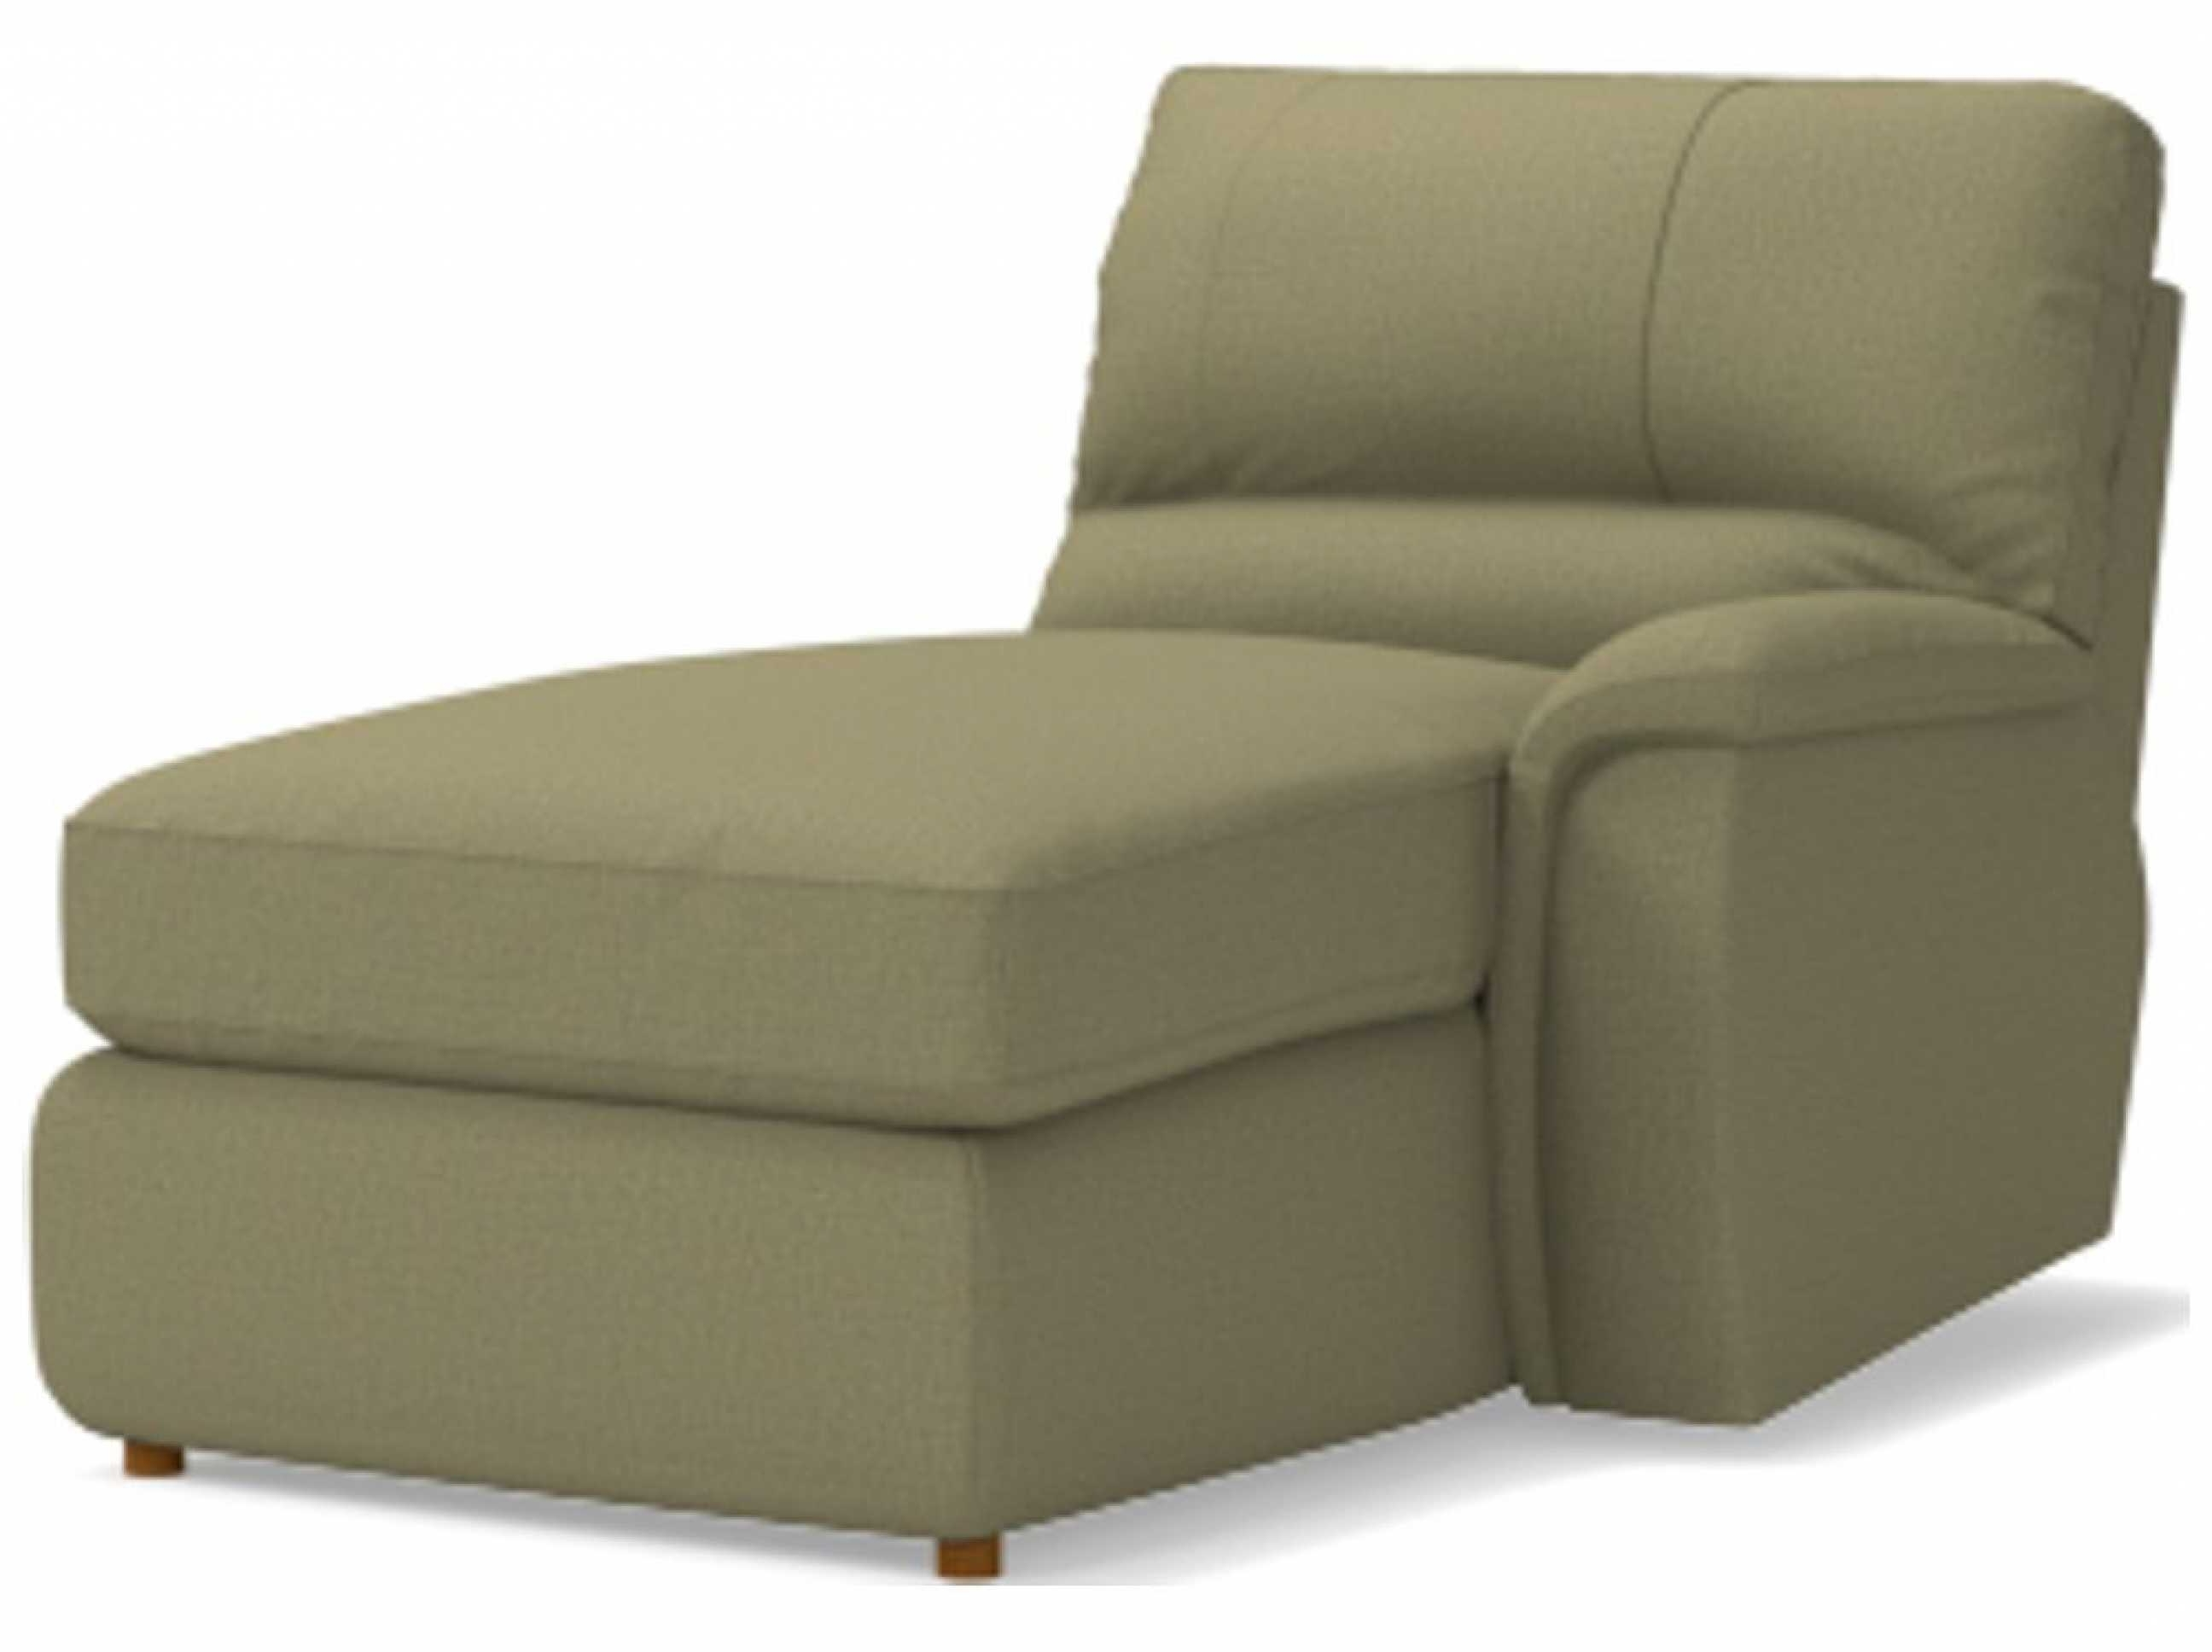 Varossa Chaise Lounge Recliner Chair Sofabeds Throughout Most Current Varossa Chaise Lounge Recliner Chair Sofa Bed – Chair Design Ideas (View 6 of 15)